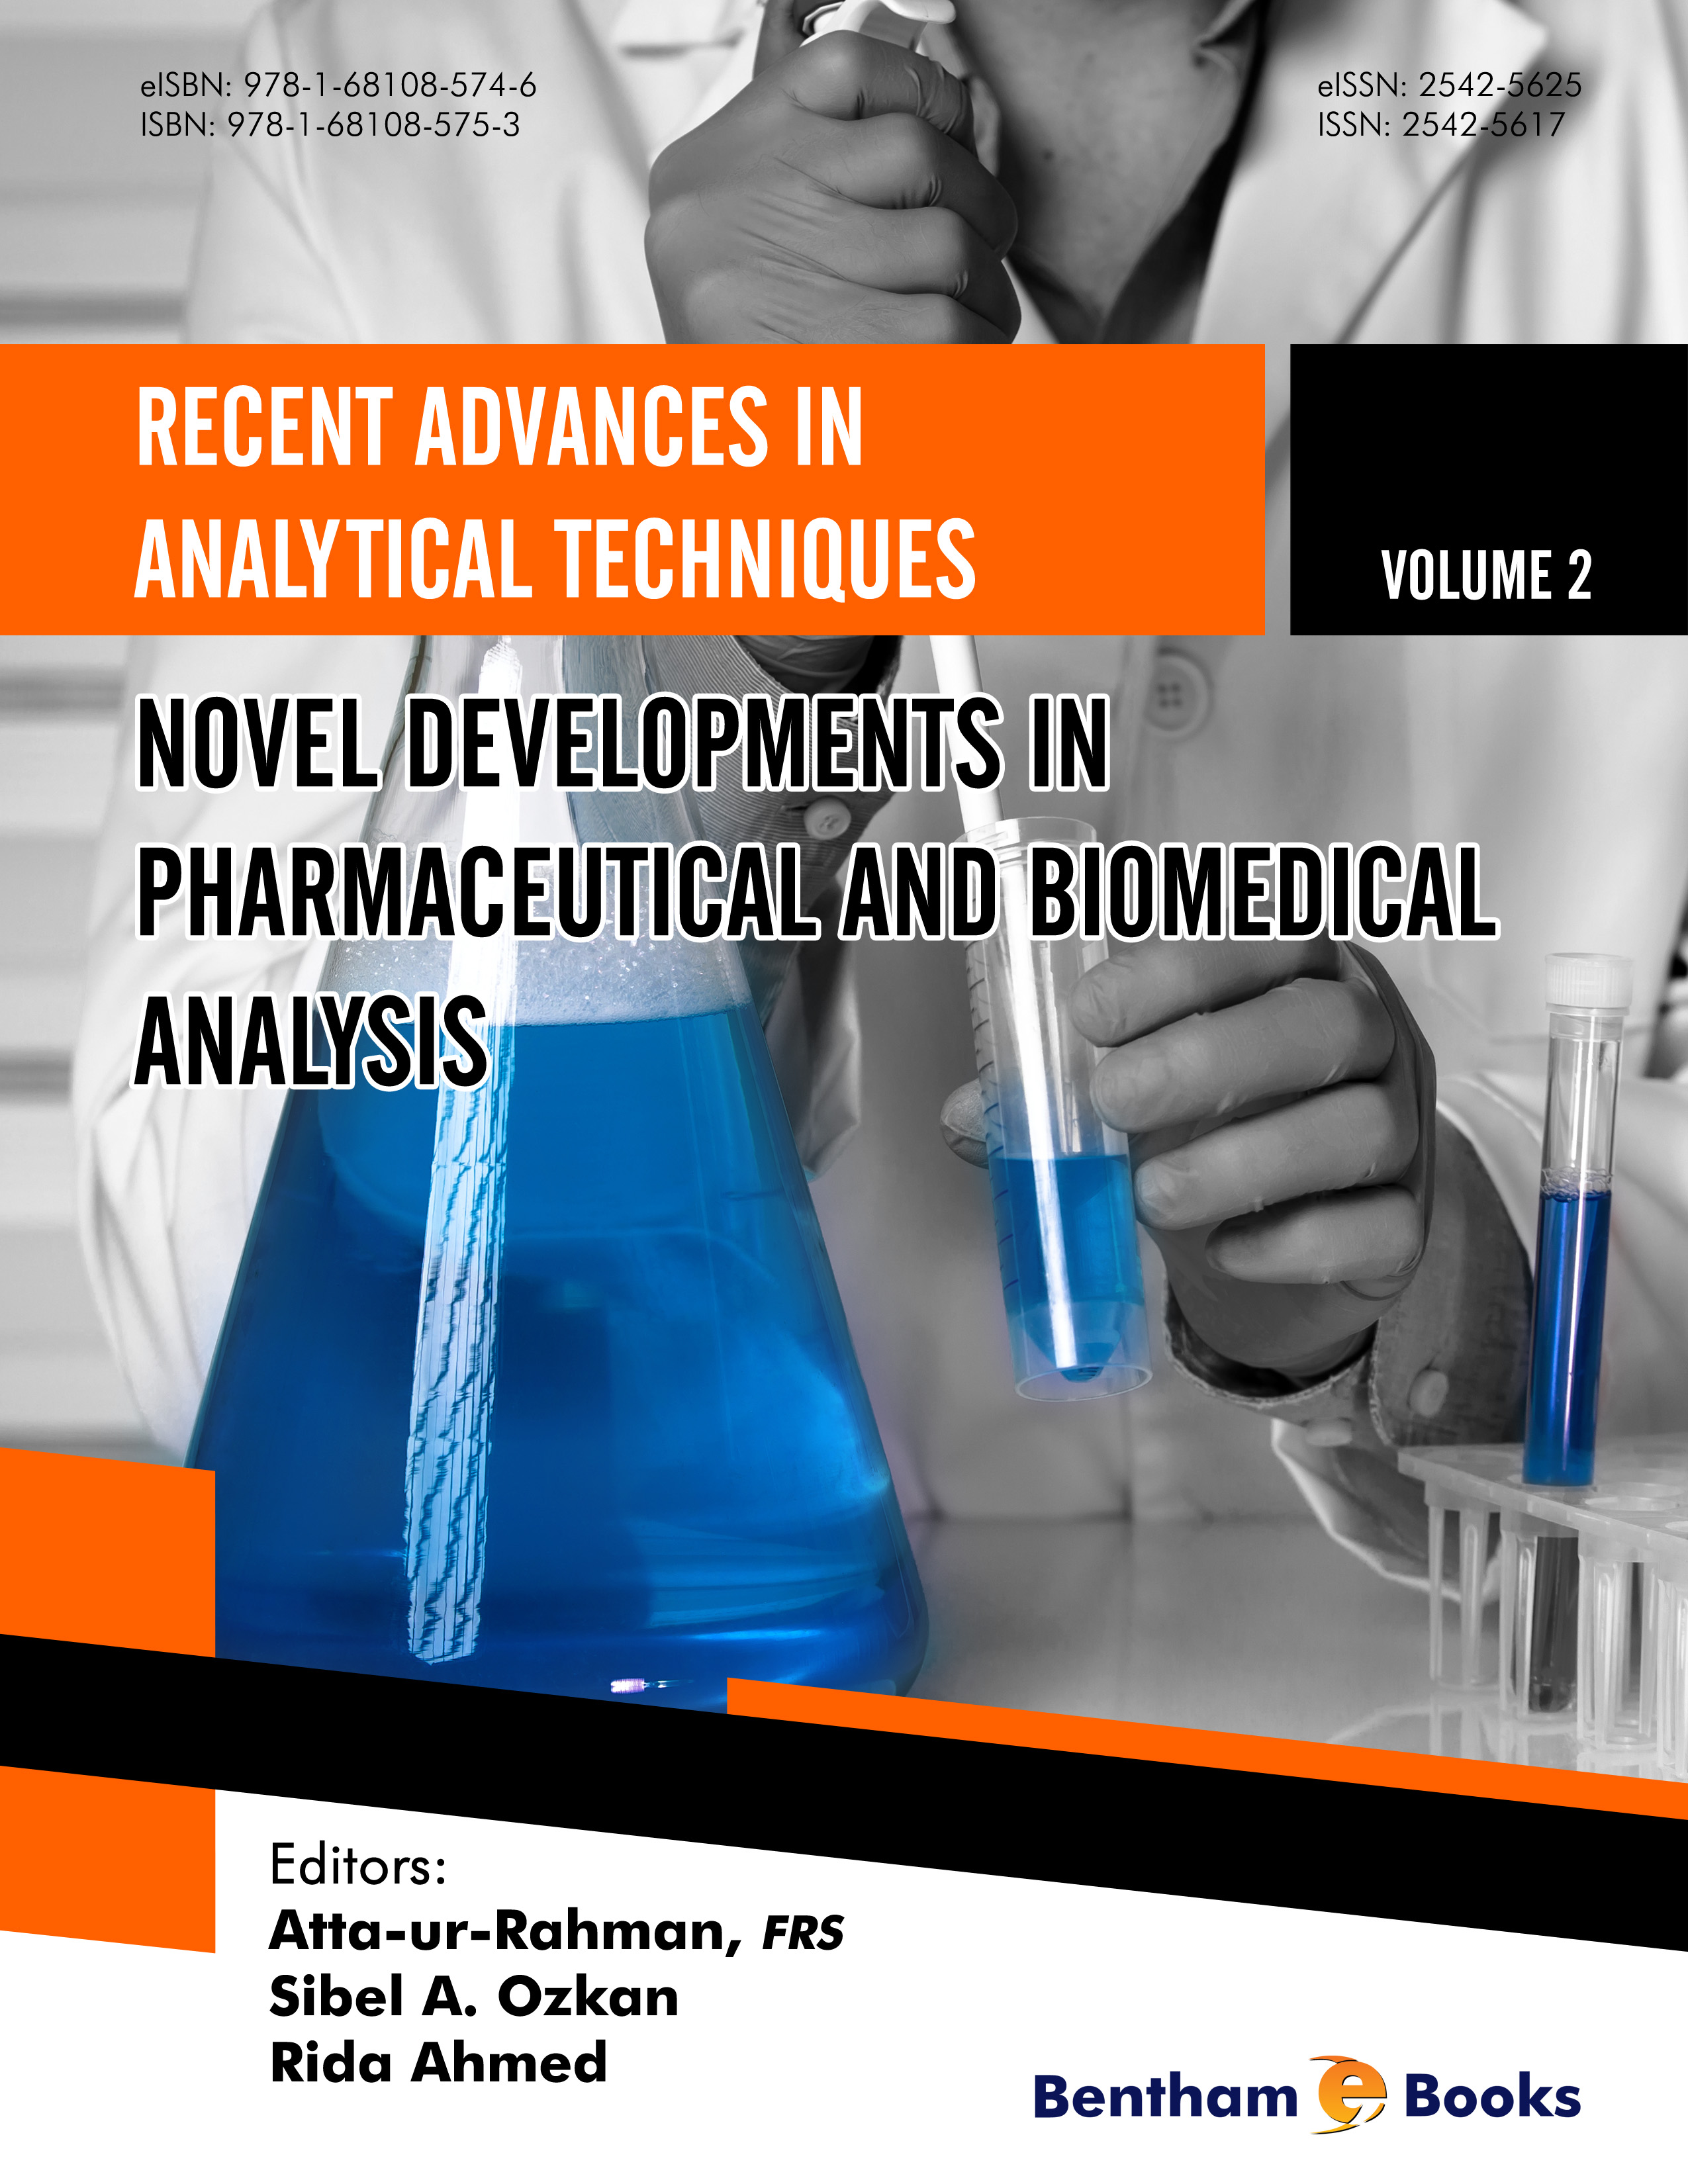 Novel Developments in Pharmaceutical and Biomedical Analysis